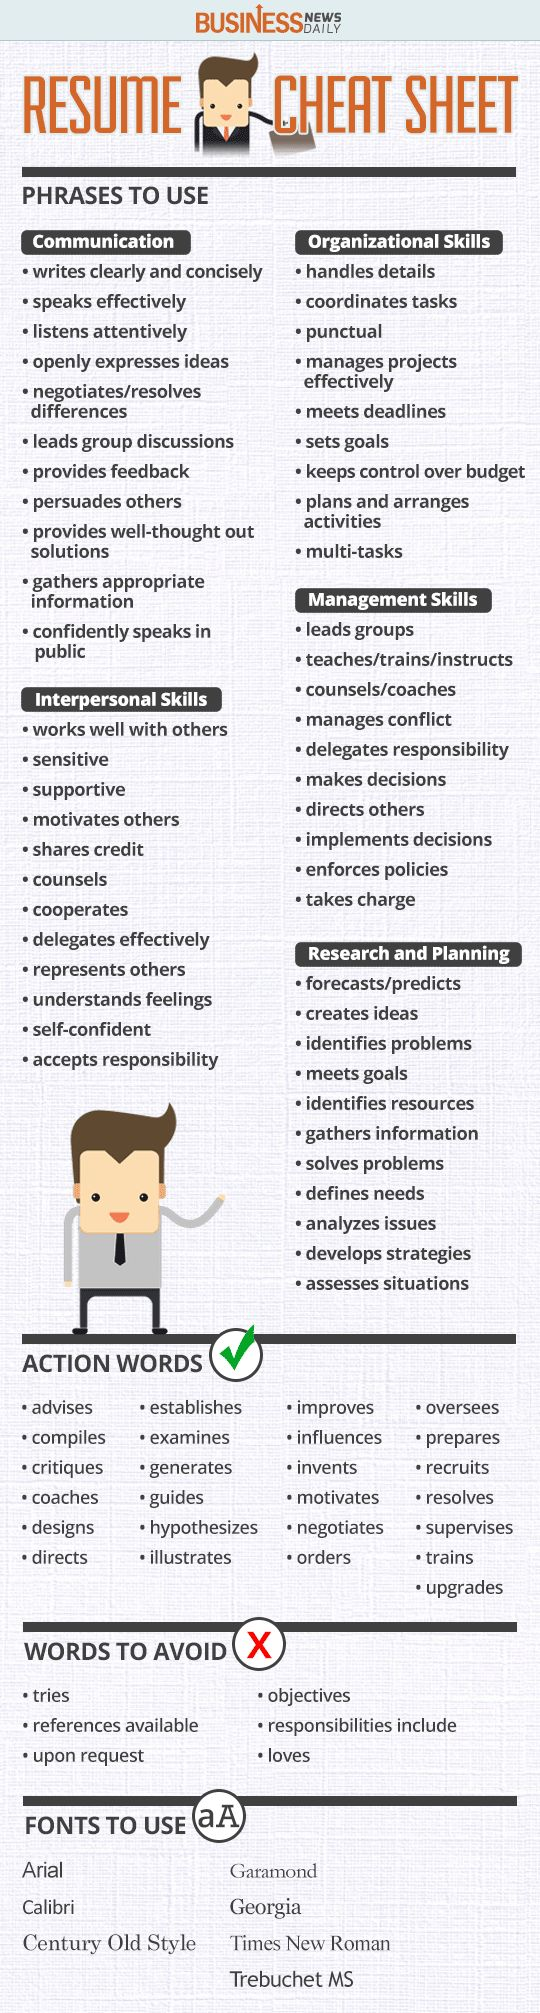 Opposenewapstandardsus  Splendid  Ideas About Resume On Pinterest  Cv Format Resume Cv And  With Entrancing Resume Cheat Sheet Infographic Andrews Almost Done With A Complete Unit On Employment Which With Comely Banquet Server Resume Also Veterinary Technician Resume In Addition Resume Synonym And Medical Biller Resume As Well As Warehouse Resume Objective Additionally Pastor Resume From Pinterestcom With Opposenewapstandardsus  Entrancing  Ideas About Resume On Pinterest  Cv Format Resume Cv And  With Comely Resume Cheat Sheet Infographic Andrews Almost Done With A Complete Unit On Employment Which And Splendid Banquet Server Resume Also Veterinary Technician Resume In Addition Resume Synonym From Pinterestcom